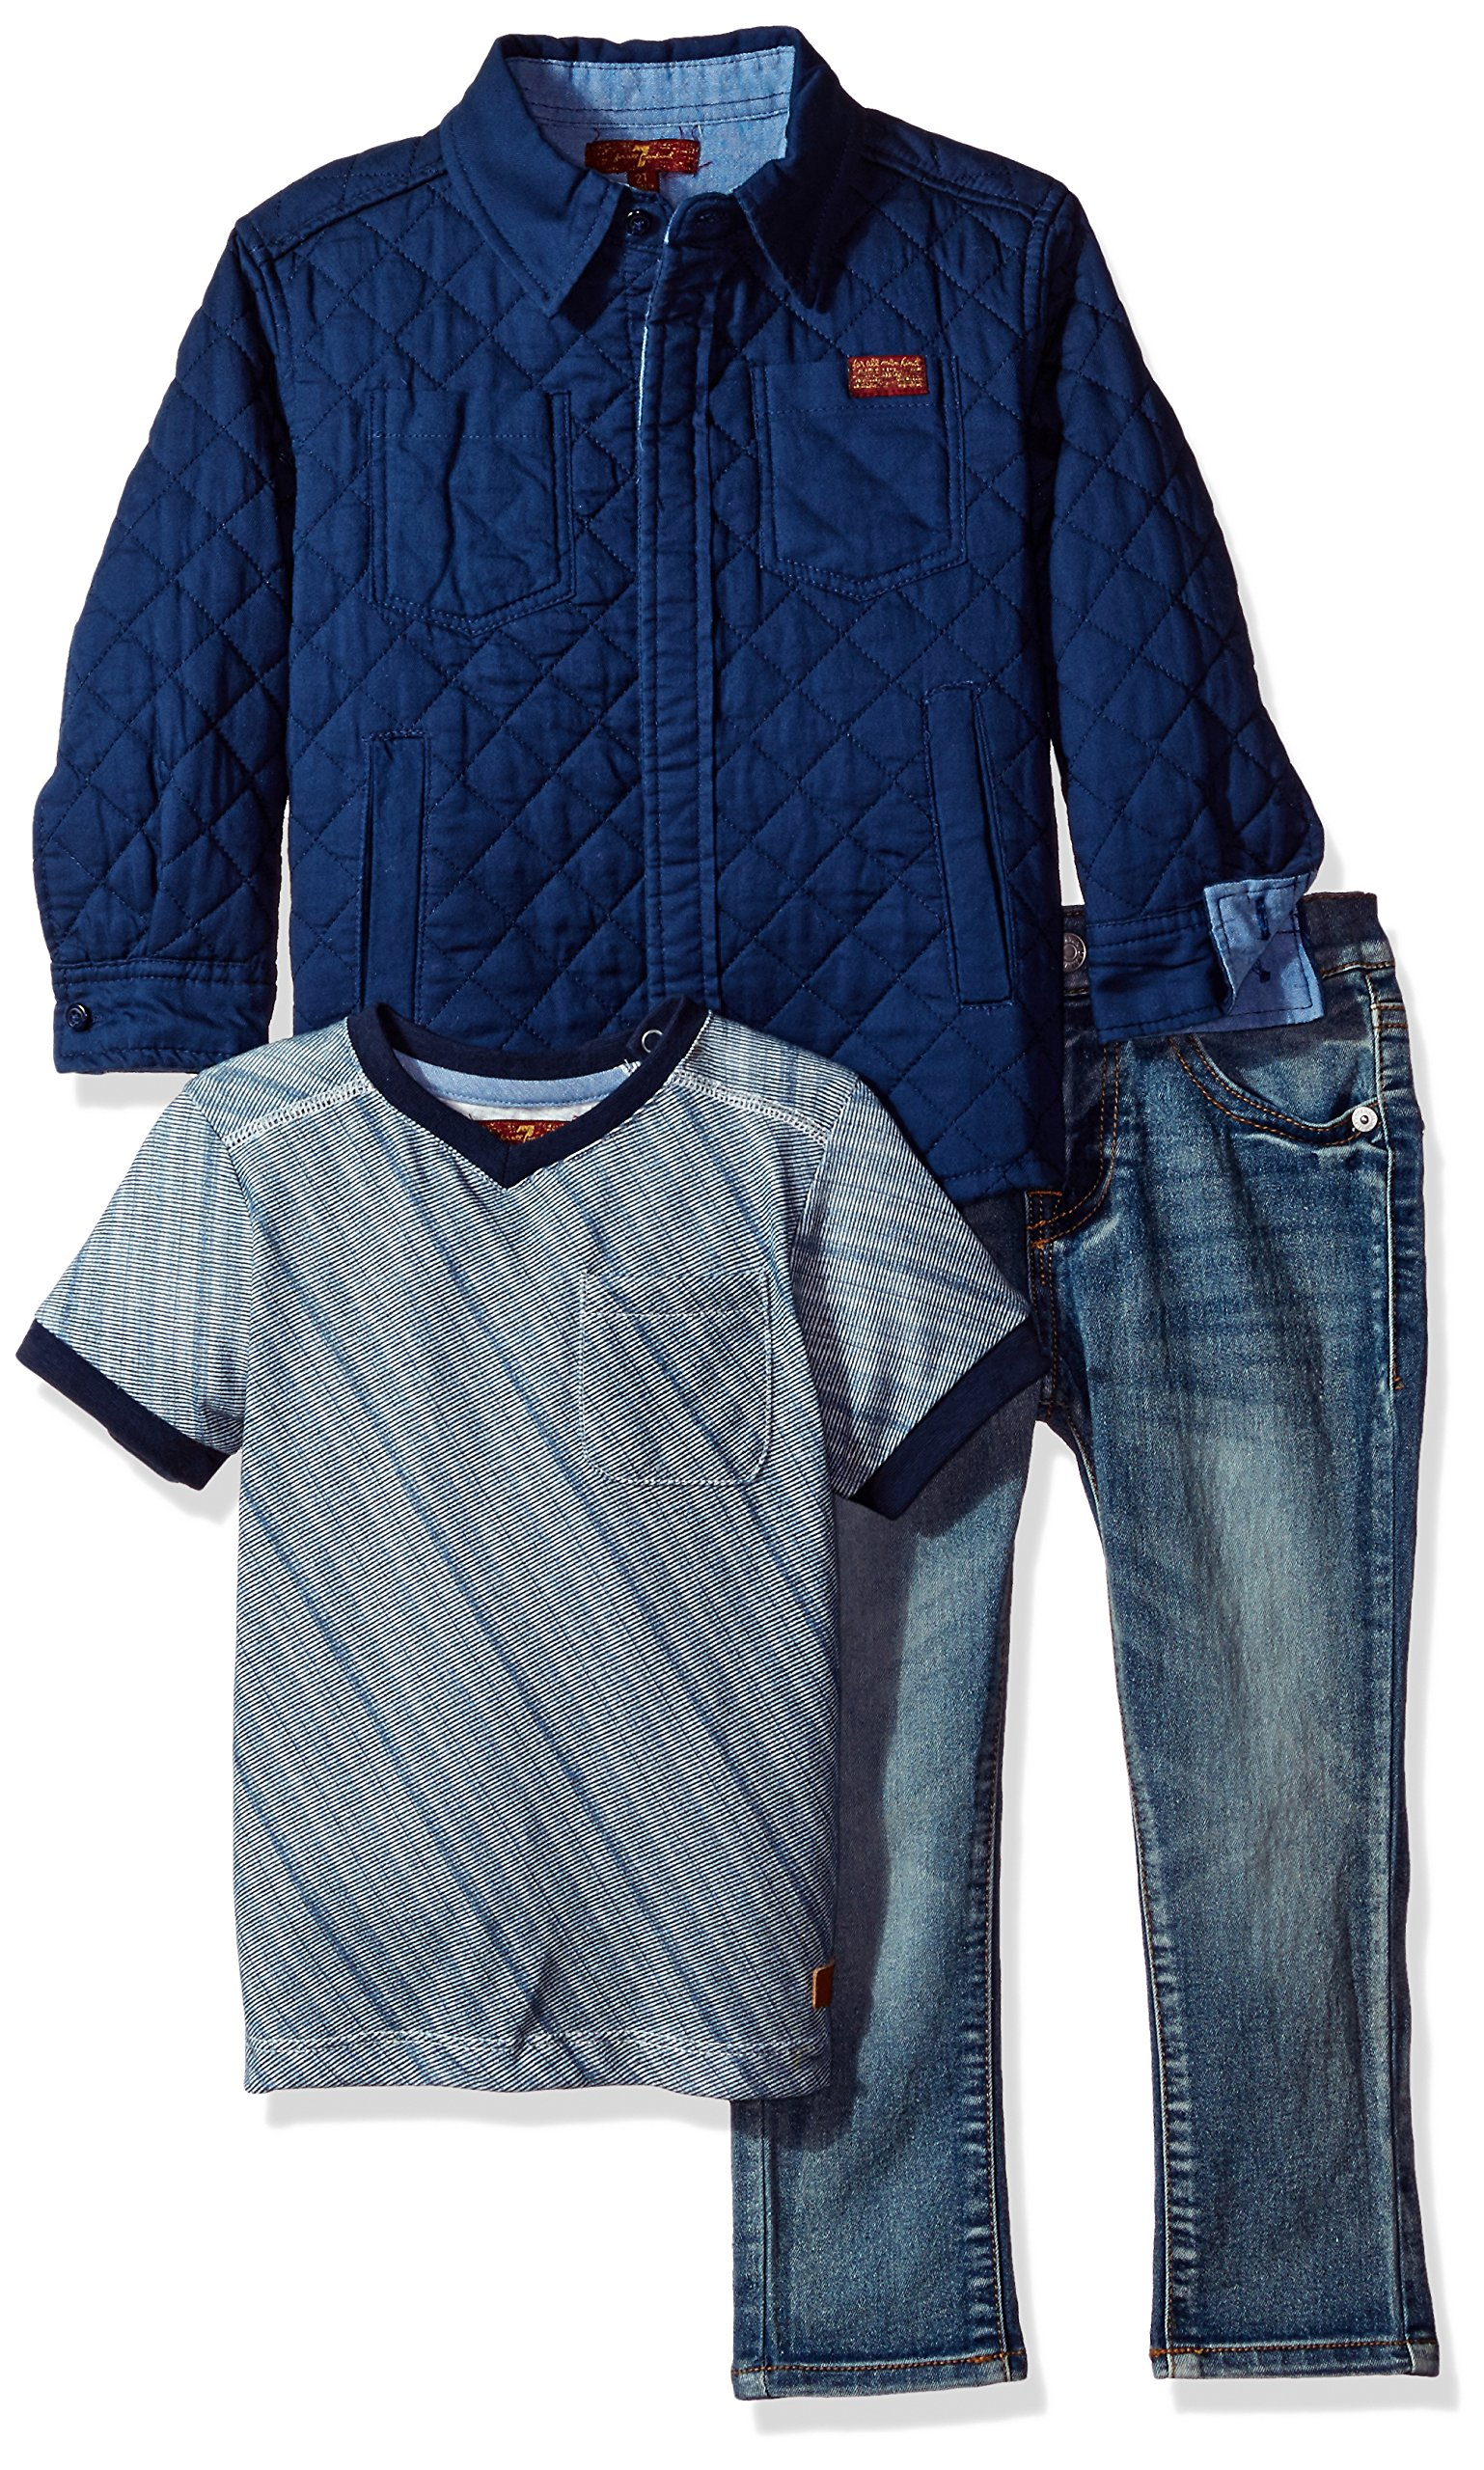 7 For All Mankind Toddler Boys' 3 Piece Trucker Jacket, T-Shirt and Jean Set, Peacoat, 2T